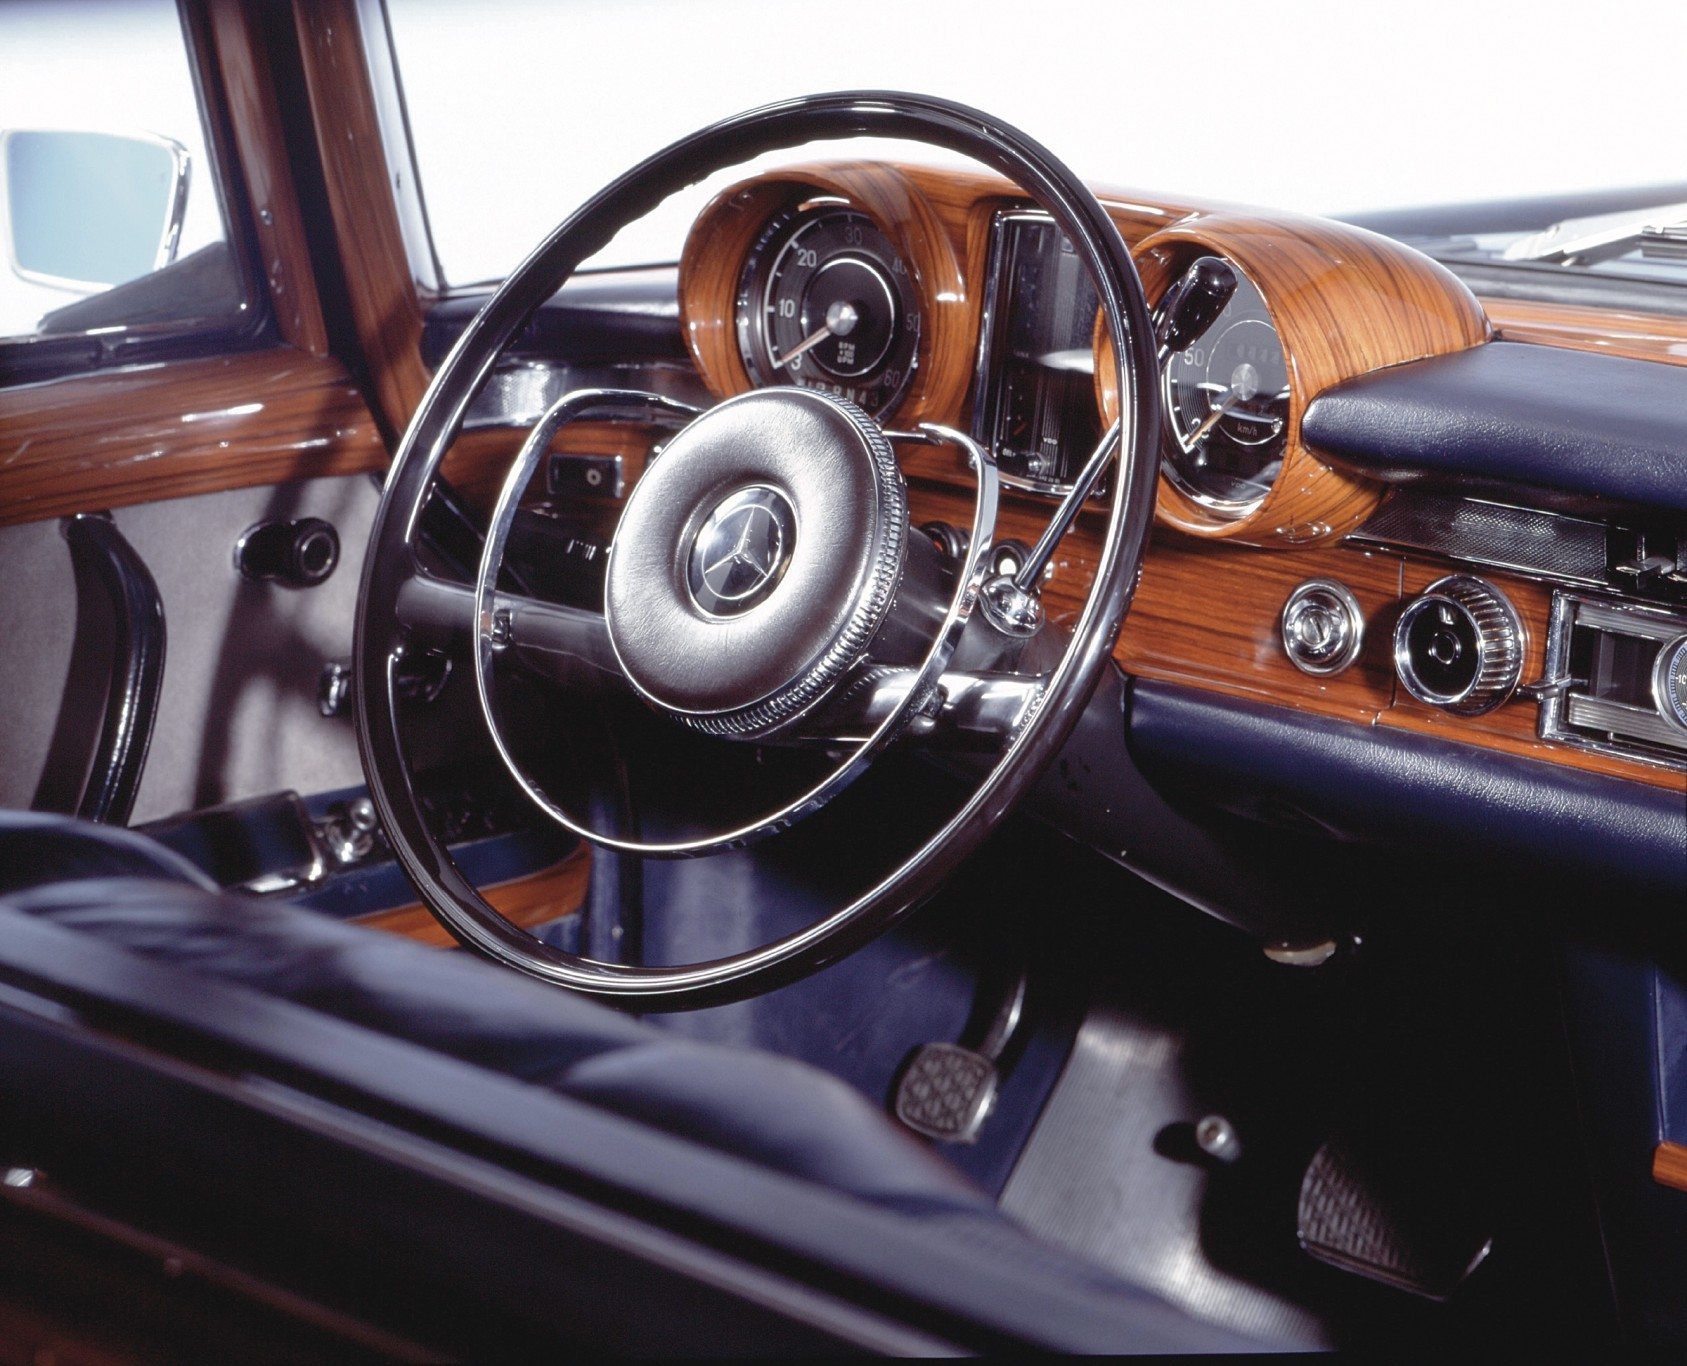 Mercedes-Benz 600 Gorgeous Dash and Interior